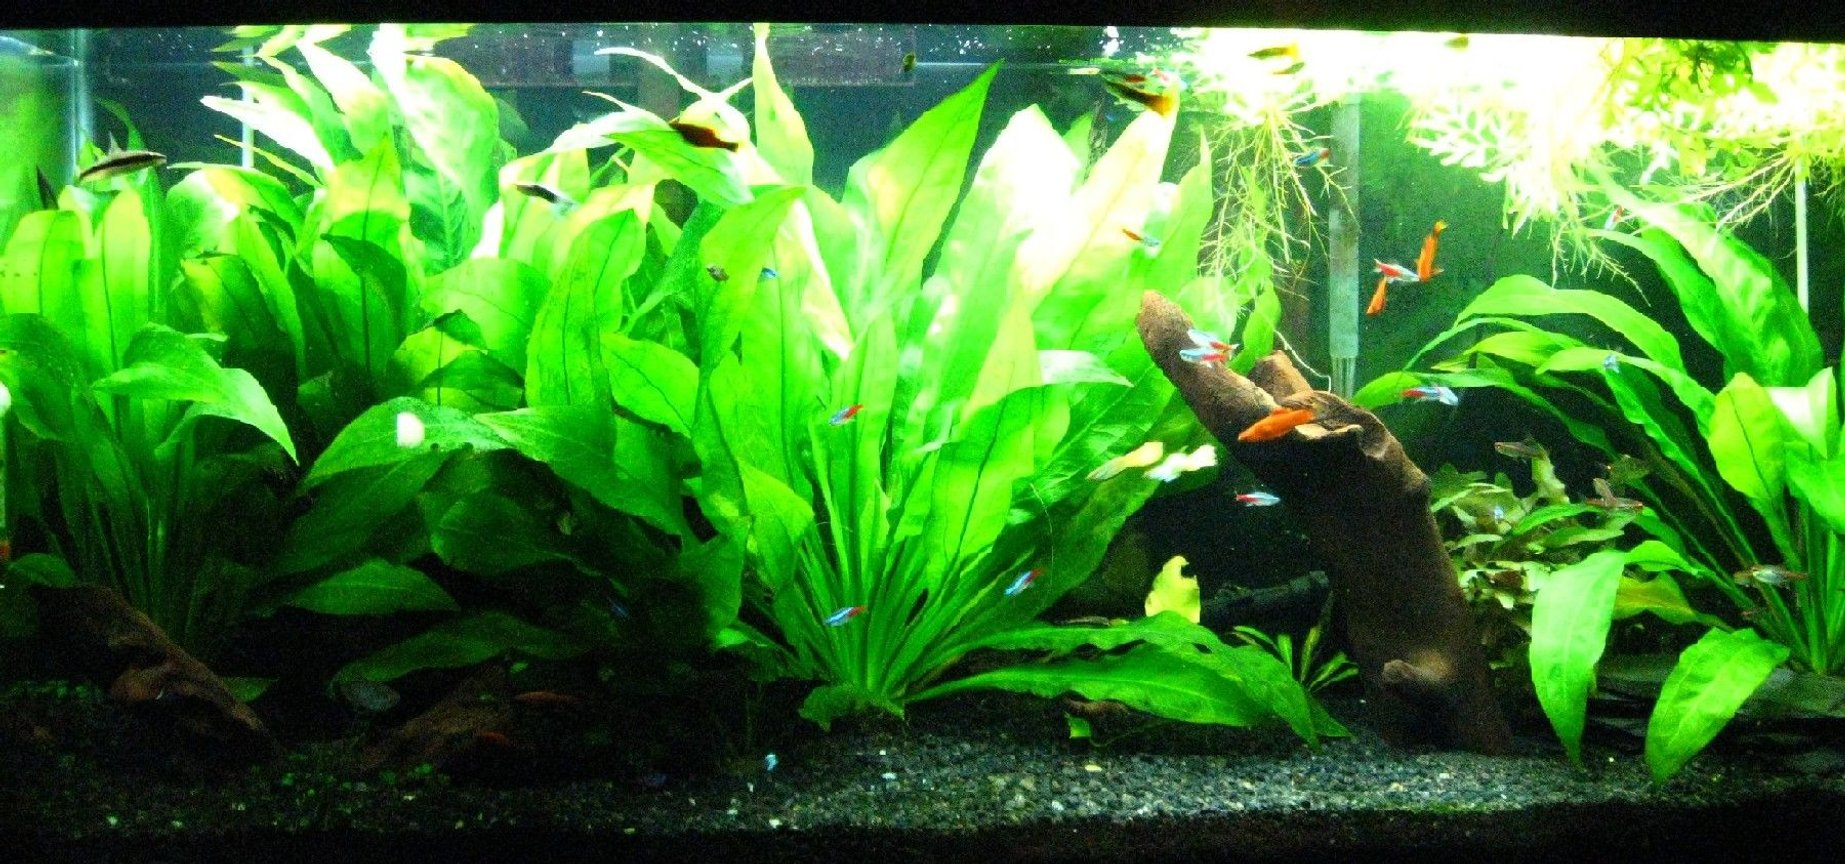 55 gallons planted tank (mostly live plants and fish) - My 55 gallon planted, community tank.